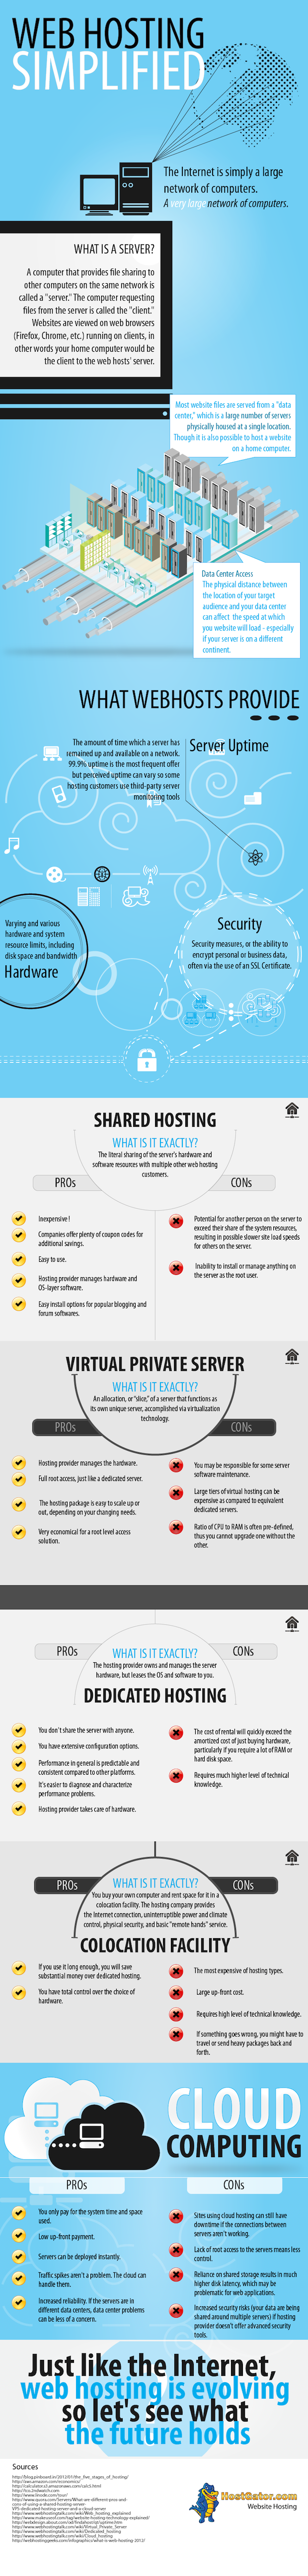 WebHosting_Explained